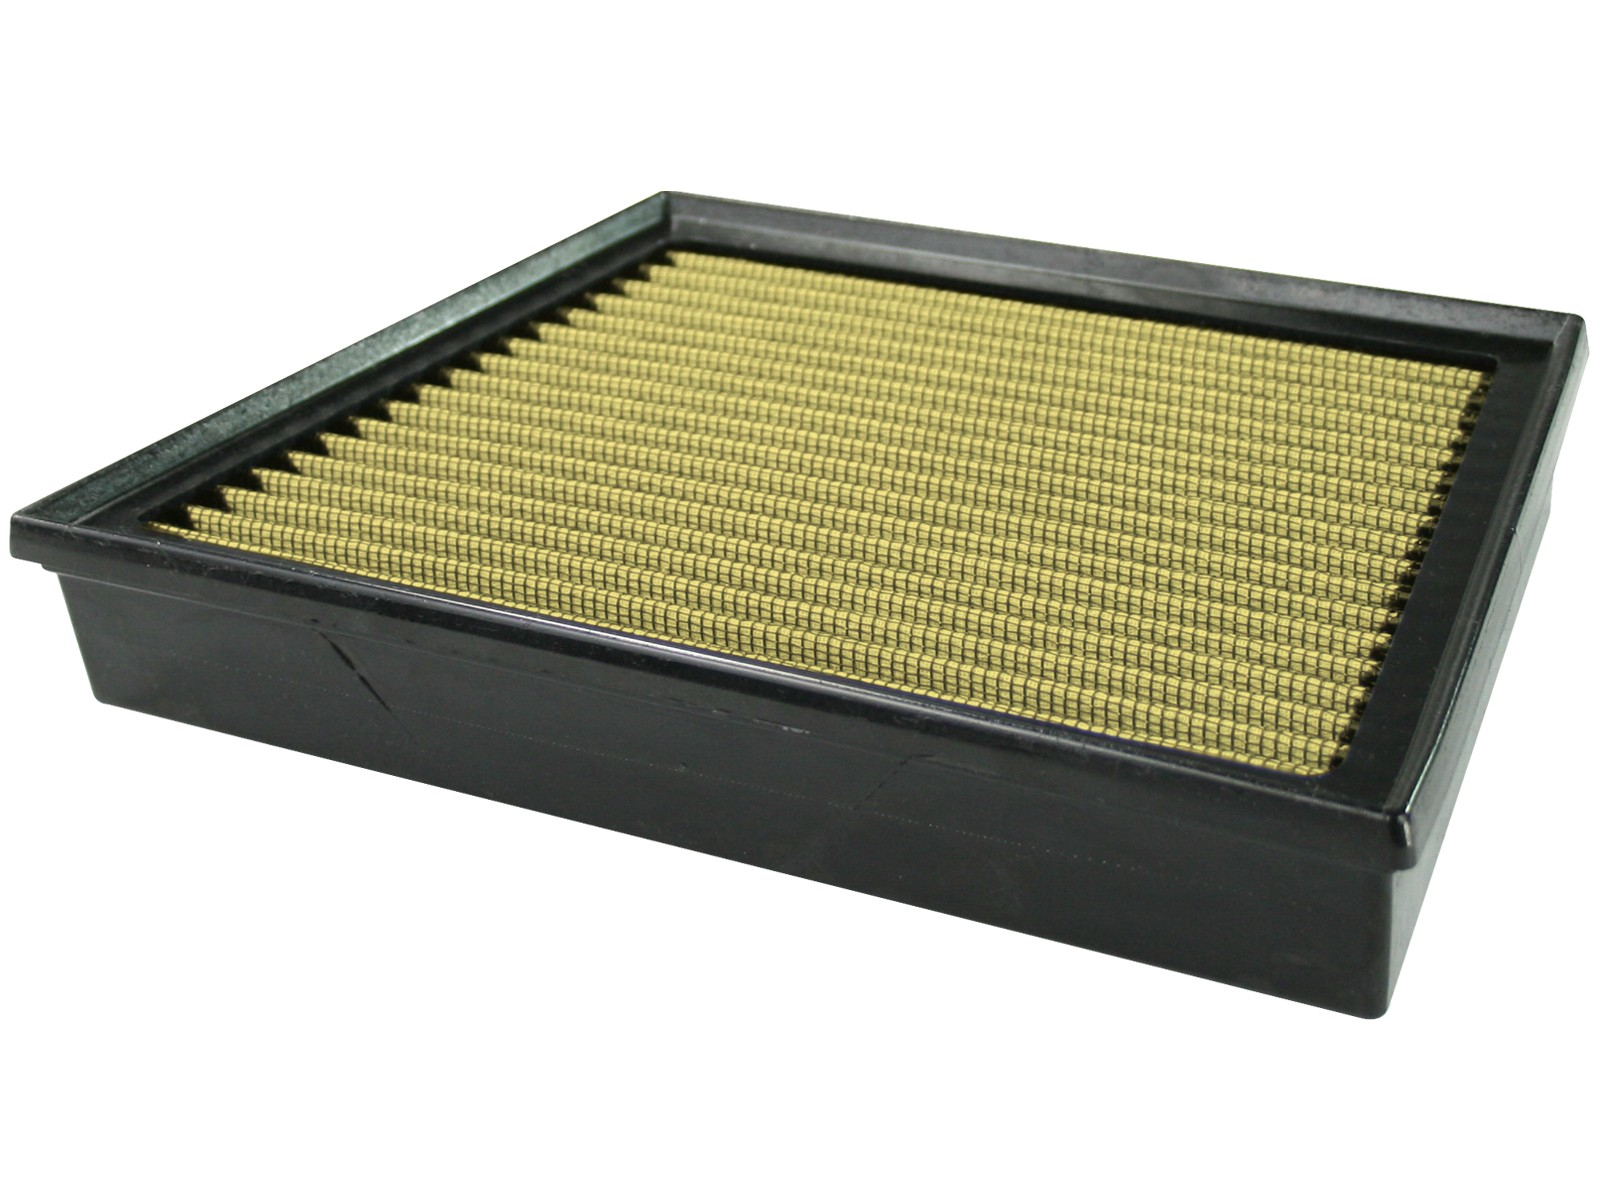 aFe POWER 73-10209 Magnum FLOW Pro GUARD7 Air Filter